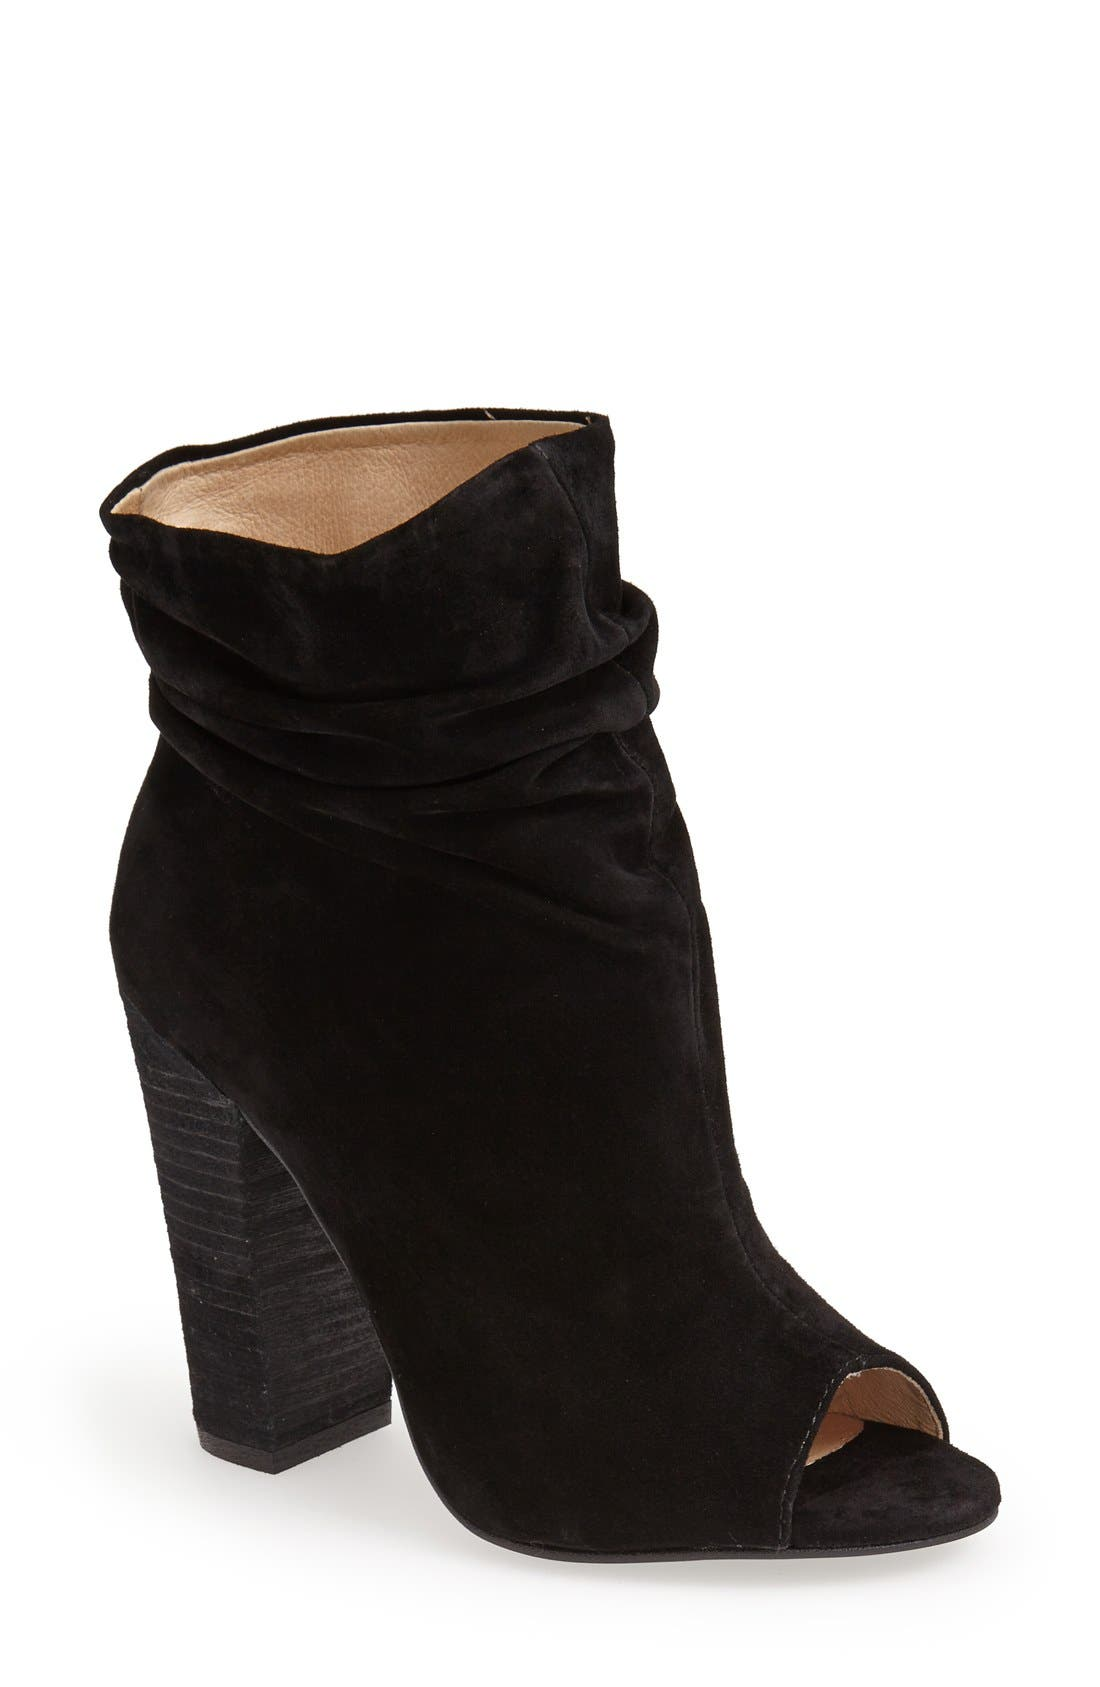 'Laurel' Peep Toe Bootie,                         Main,                         color,